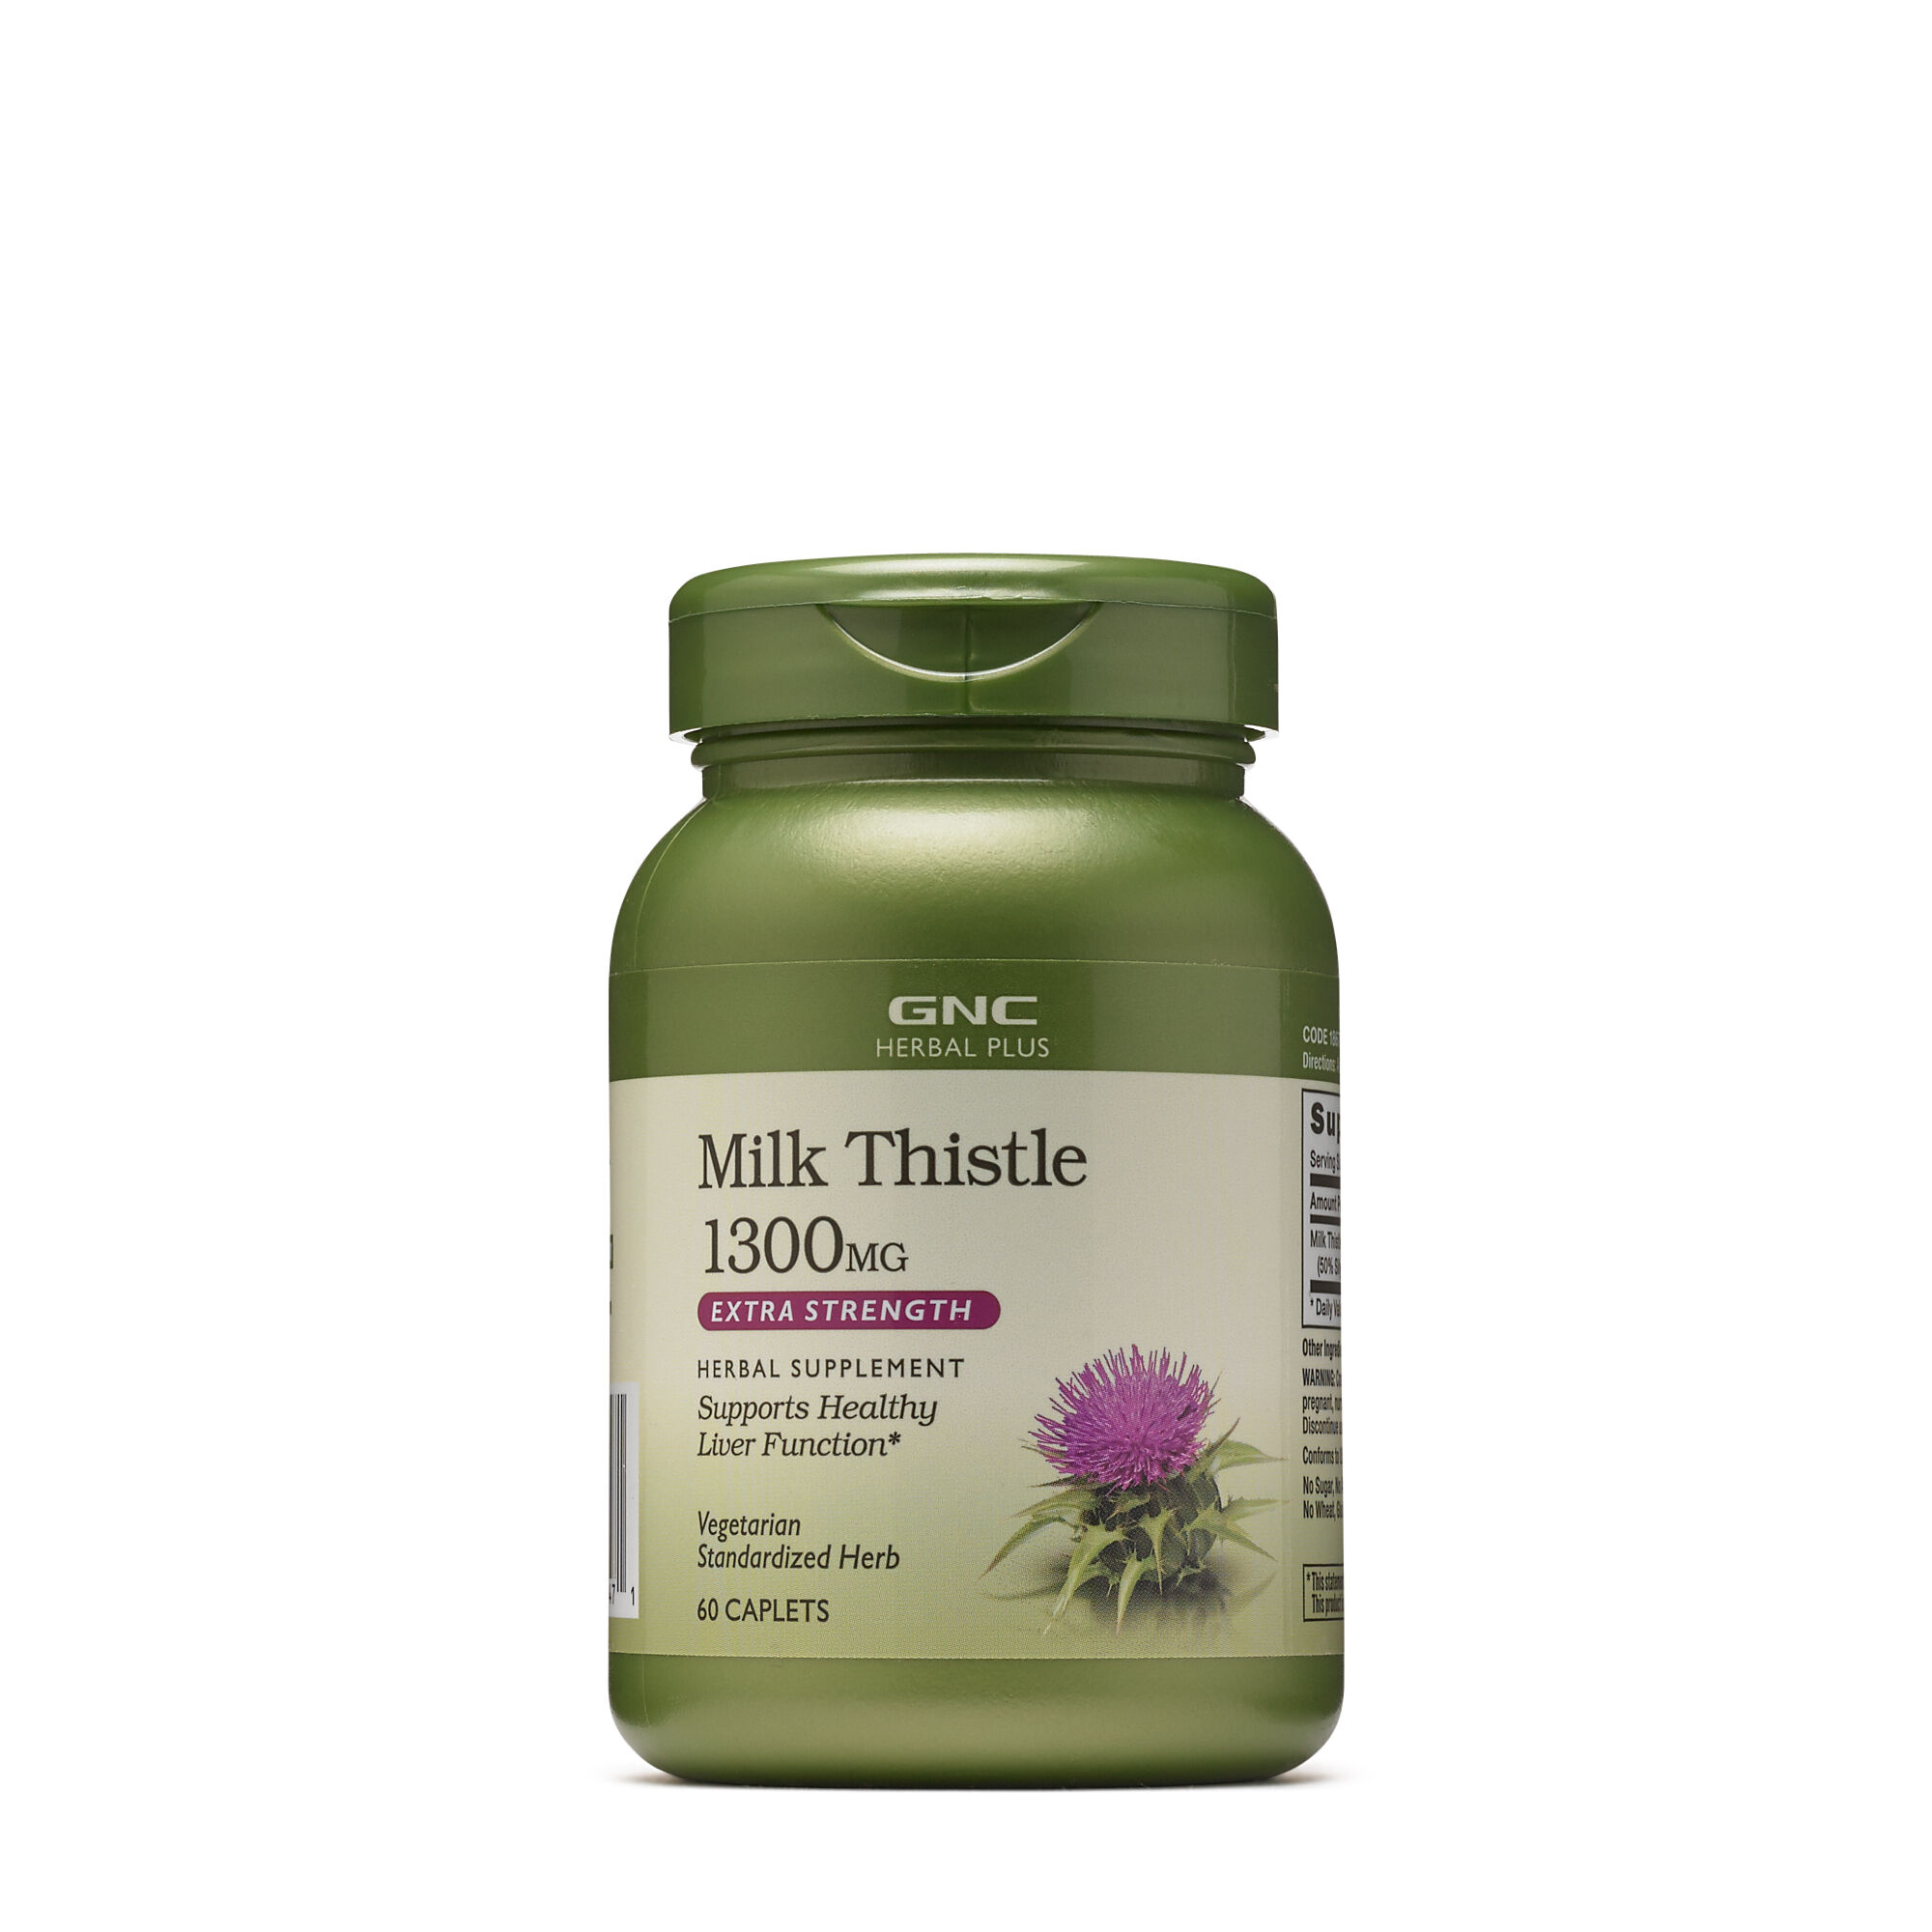 [BEST] GNC 밀크시슬 1300 (60정) GNC HERBAL PLUS® MILK THISTLE 1300 MG, 60 Caplets